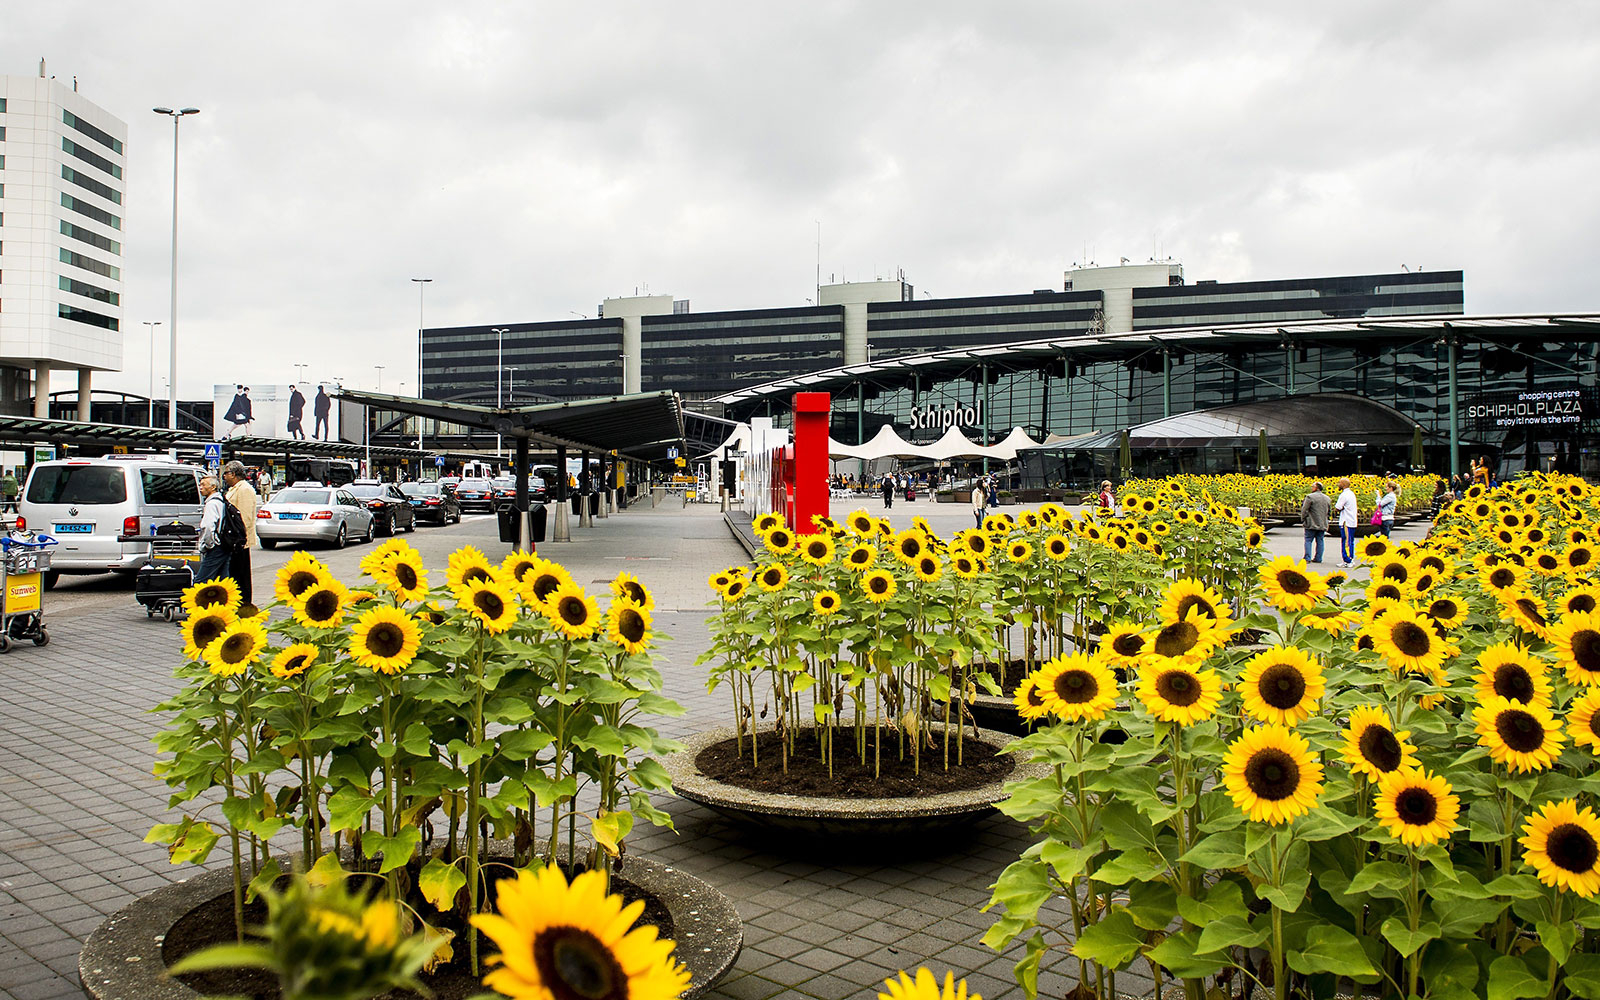 No. 3 Amsterdam Airport Schiphol (AMS)